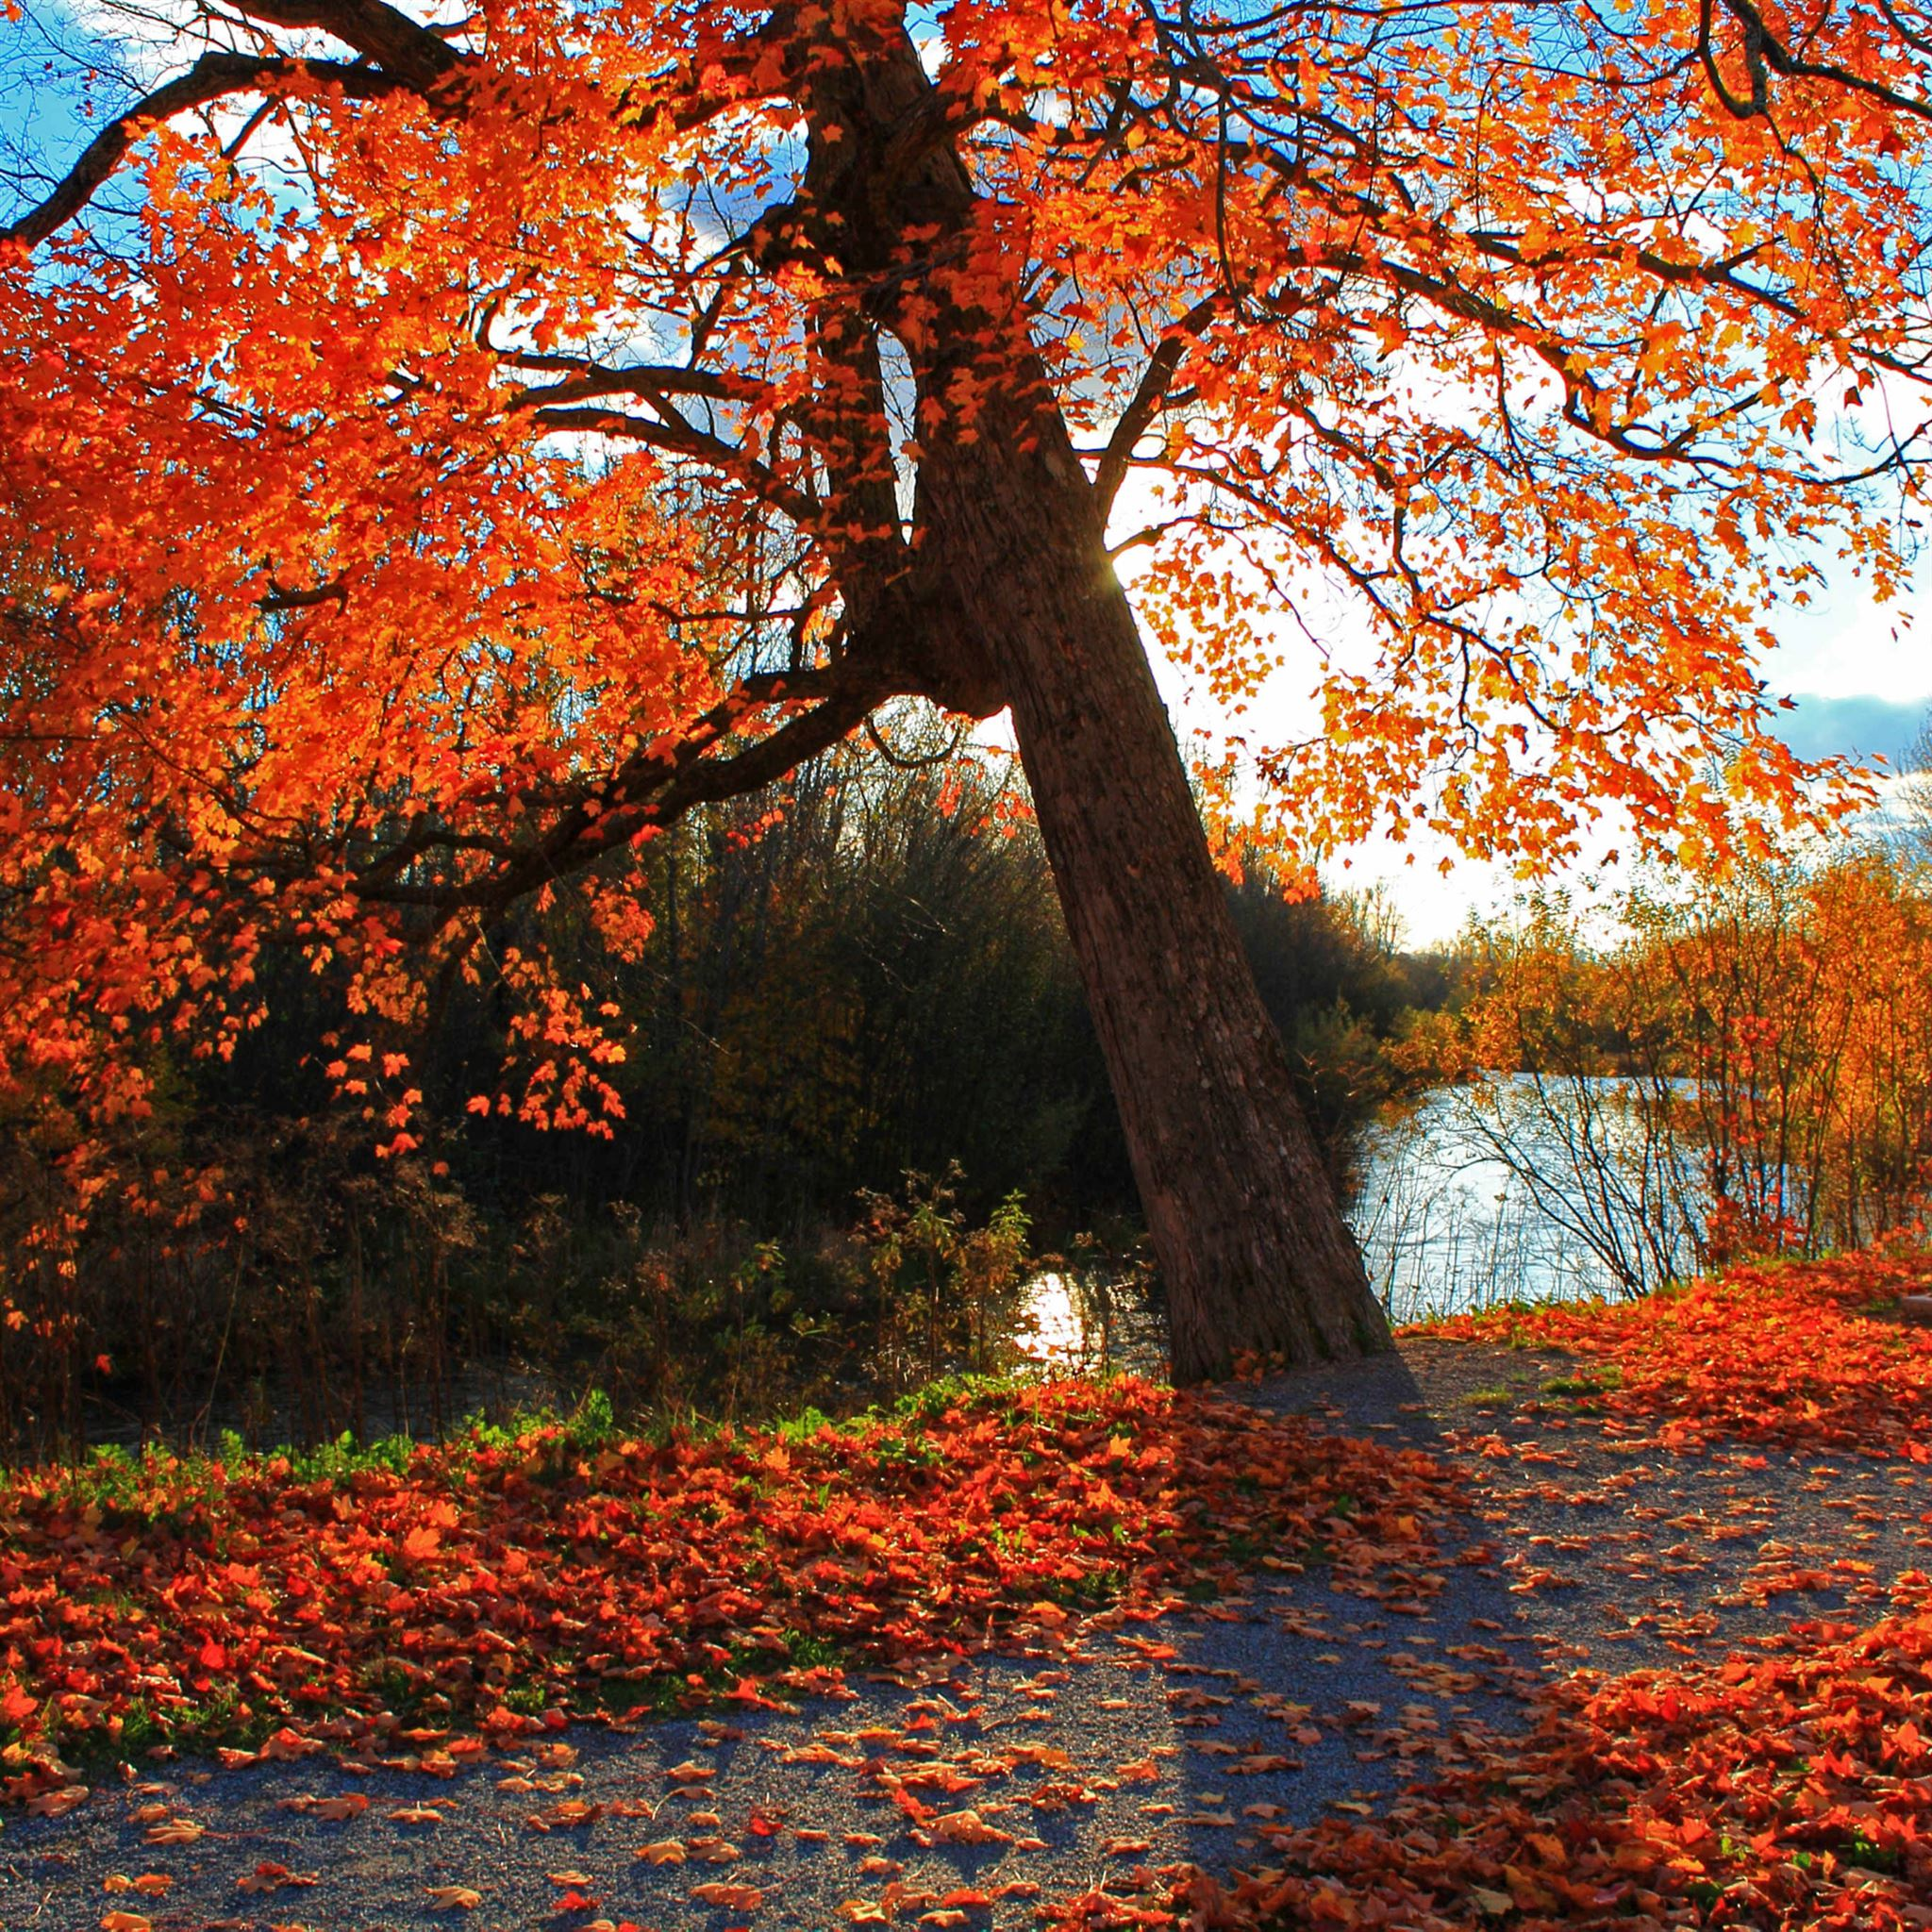 Autumn Park River Shop Landscape iPad Pro wallpaper